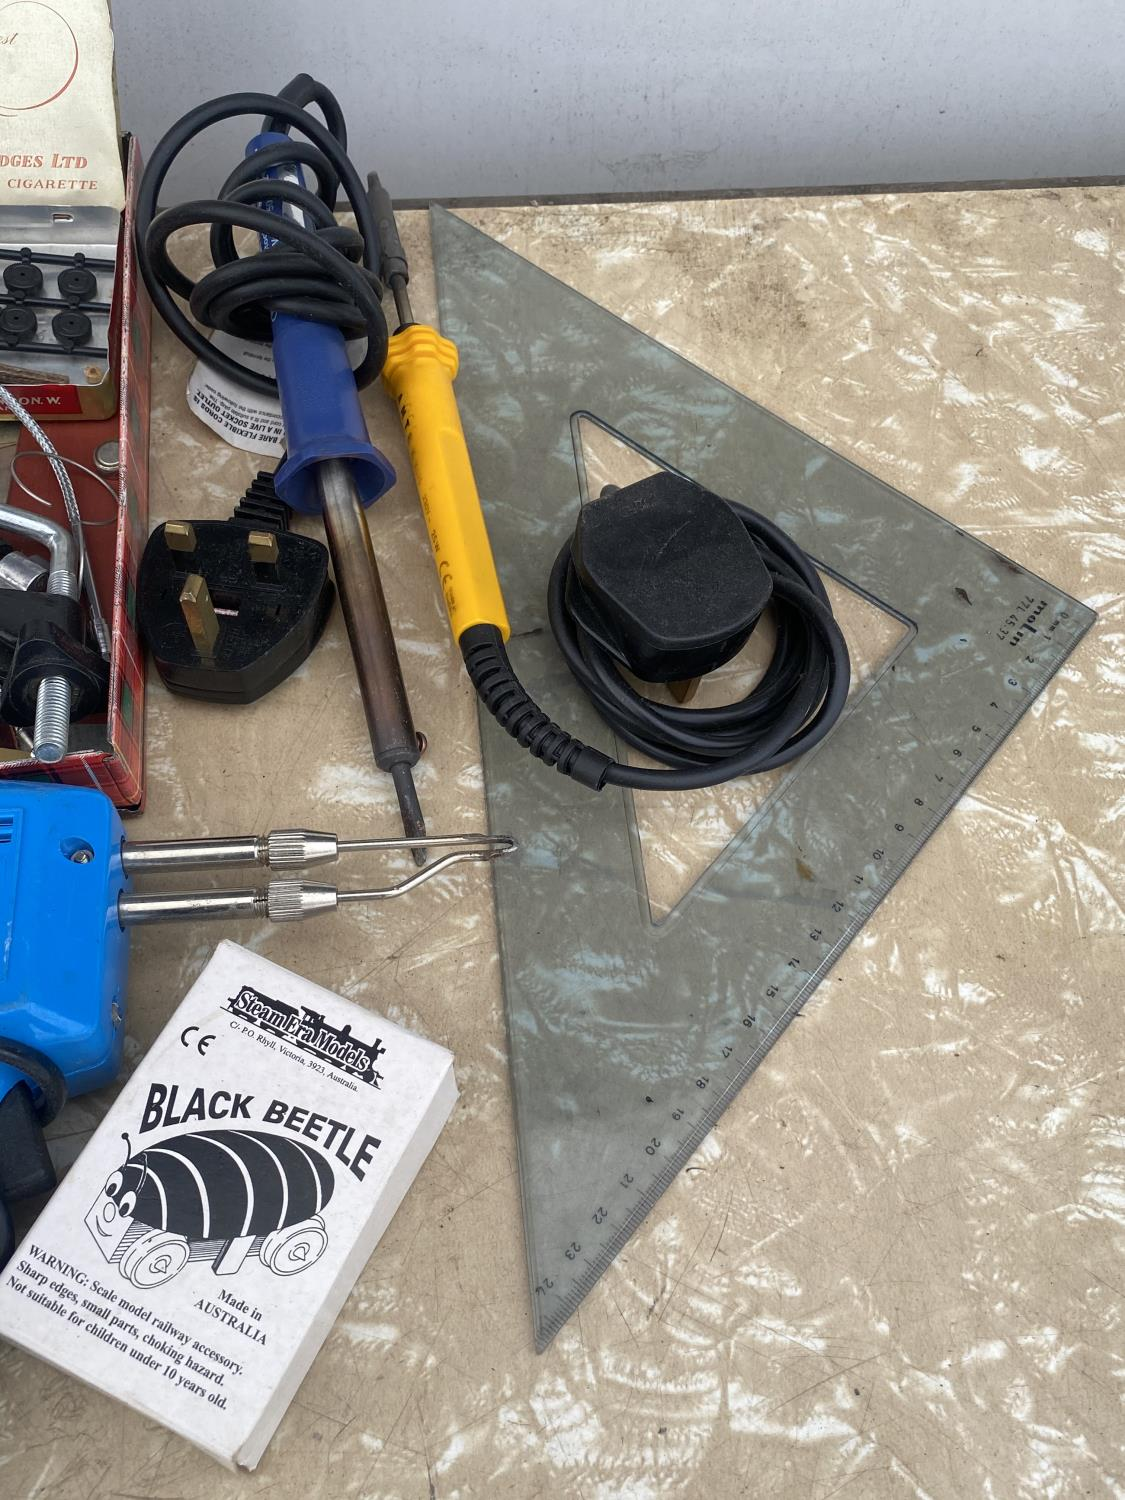 AN ASSORTMENT OF ARTS AND CRAFTS EQUIPMENT TO INCLUDE SOLDERING IRONS, A CLAMP AND MODEL PAINT AND - Image 5 of 6